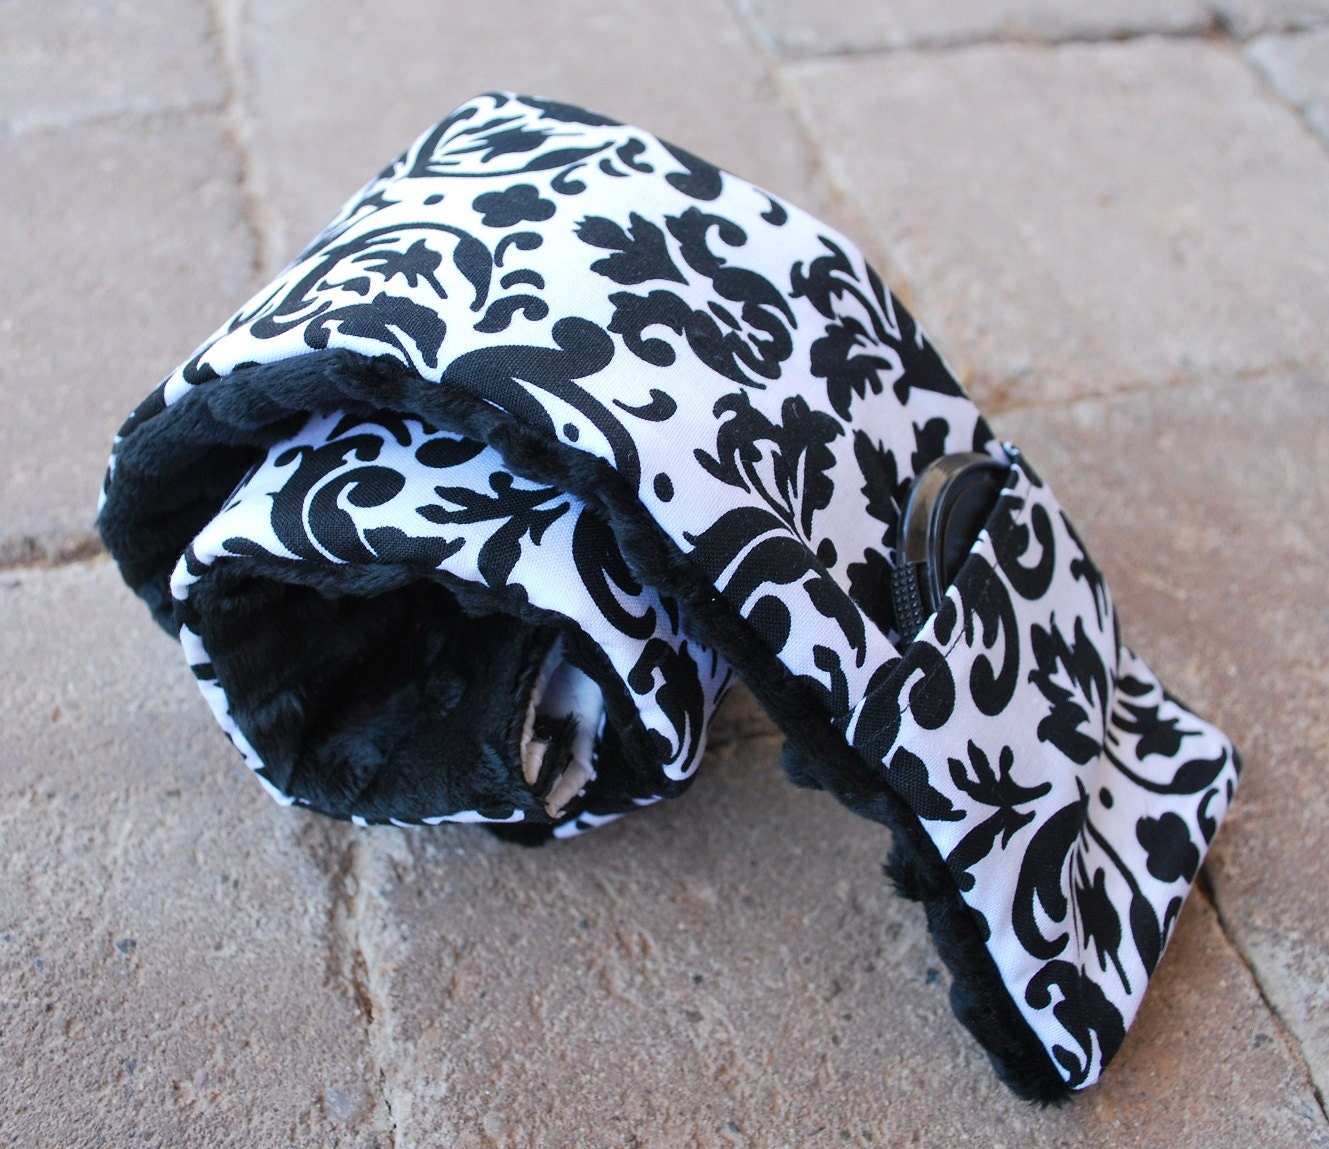 Padded Camera Strap Cover in Black and White Damask with Black Minky Dimple Dots